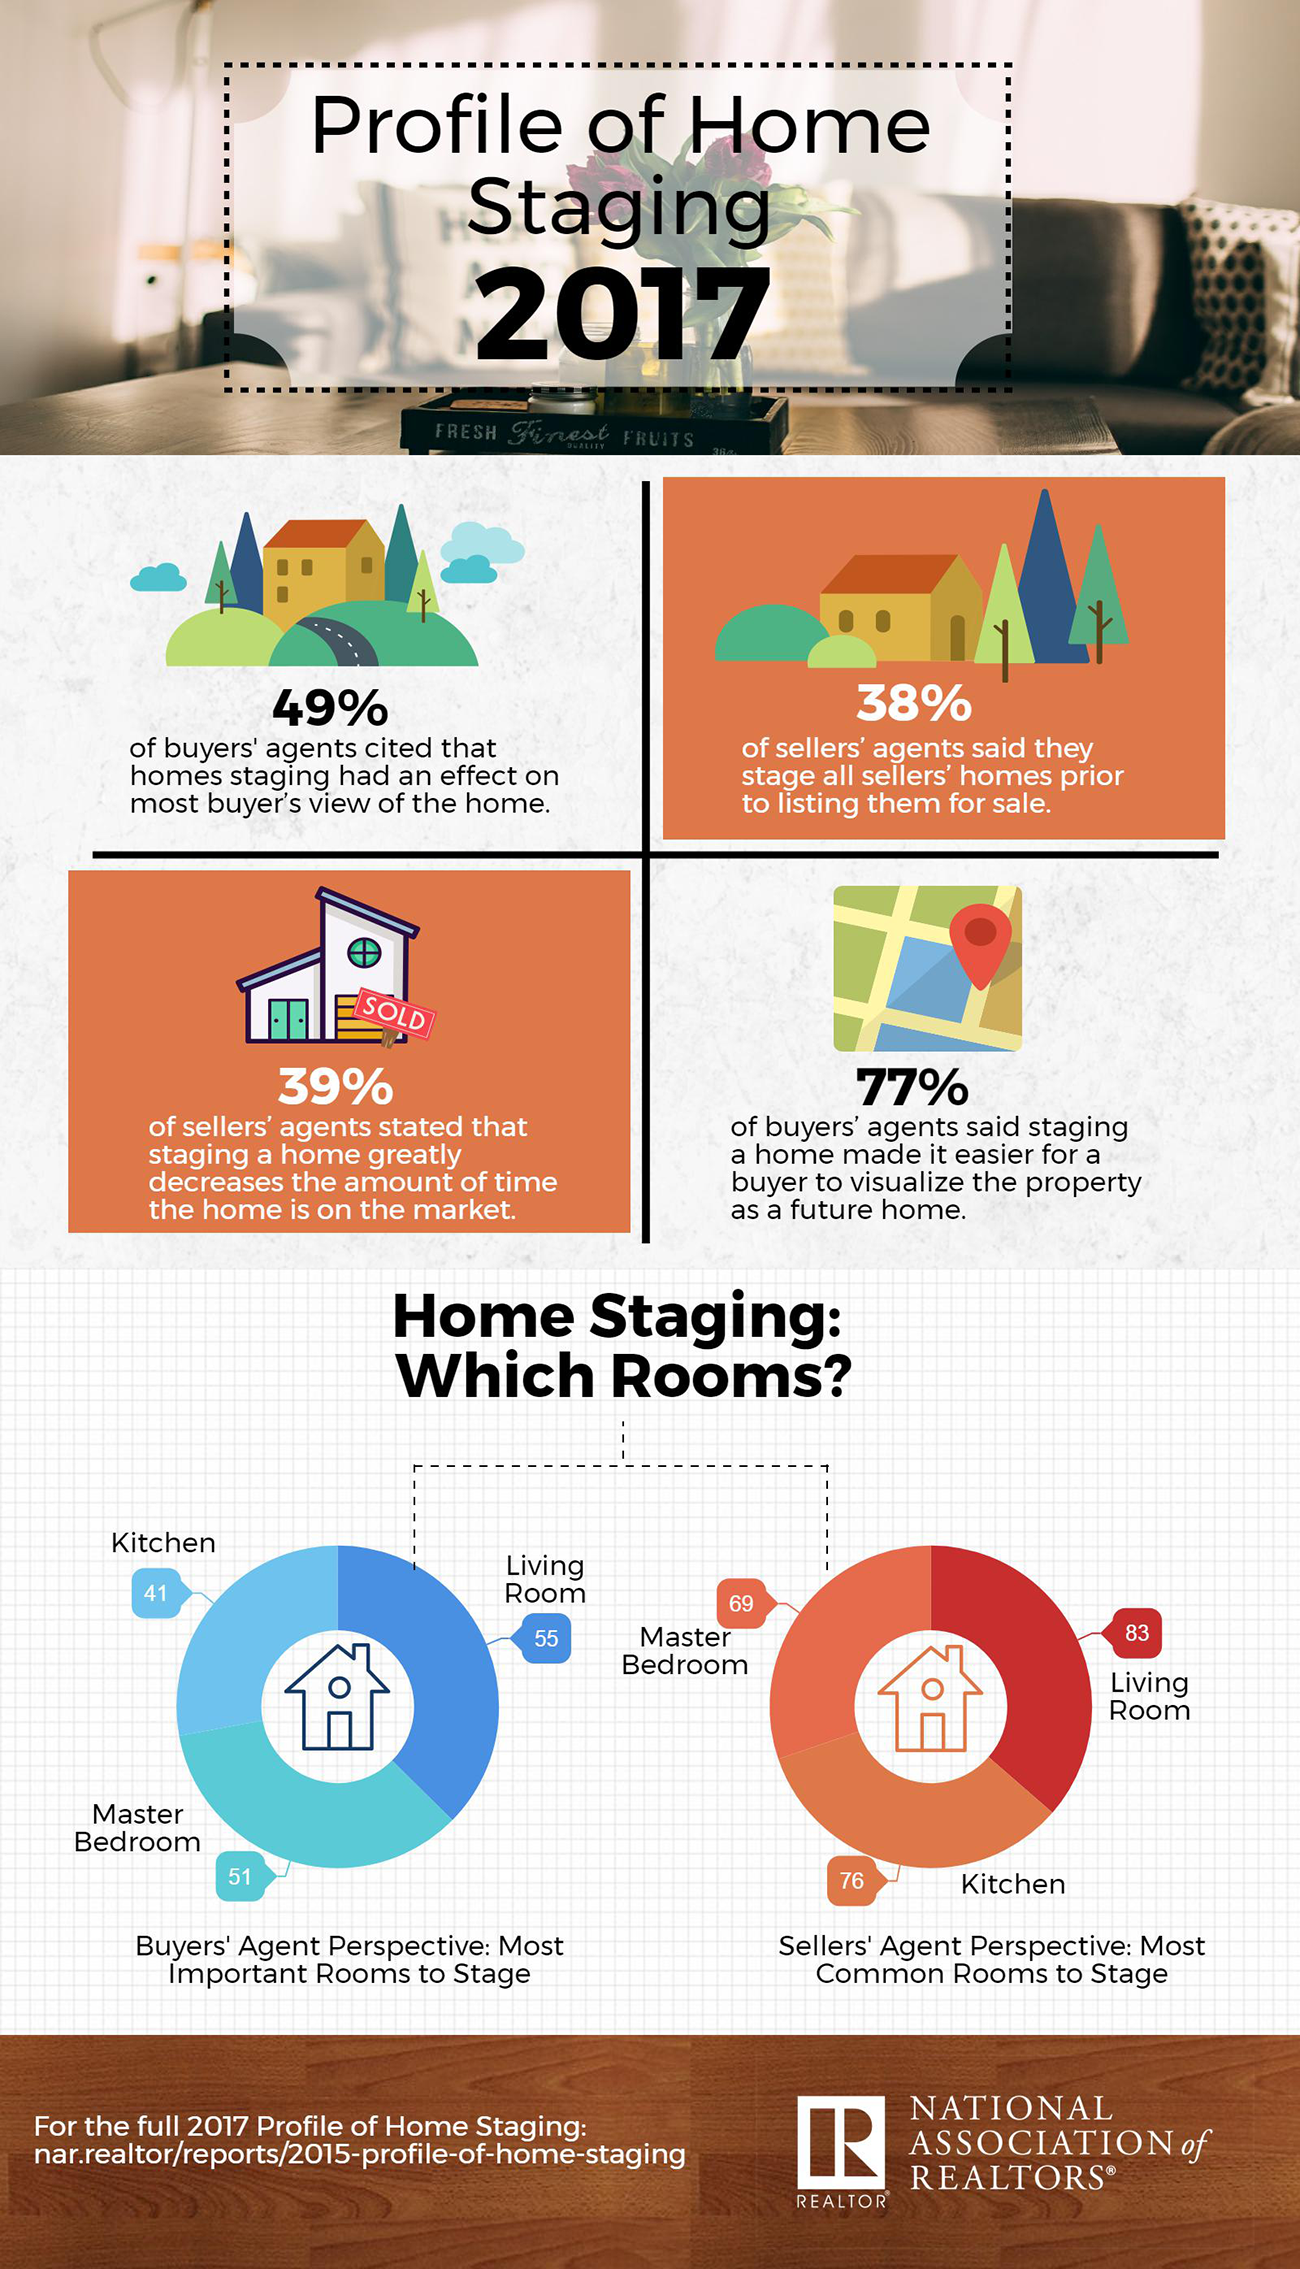 2017-profile-of-home-staging-infographic-07-06-2017-1300w-2269h